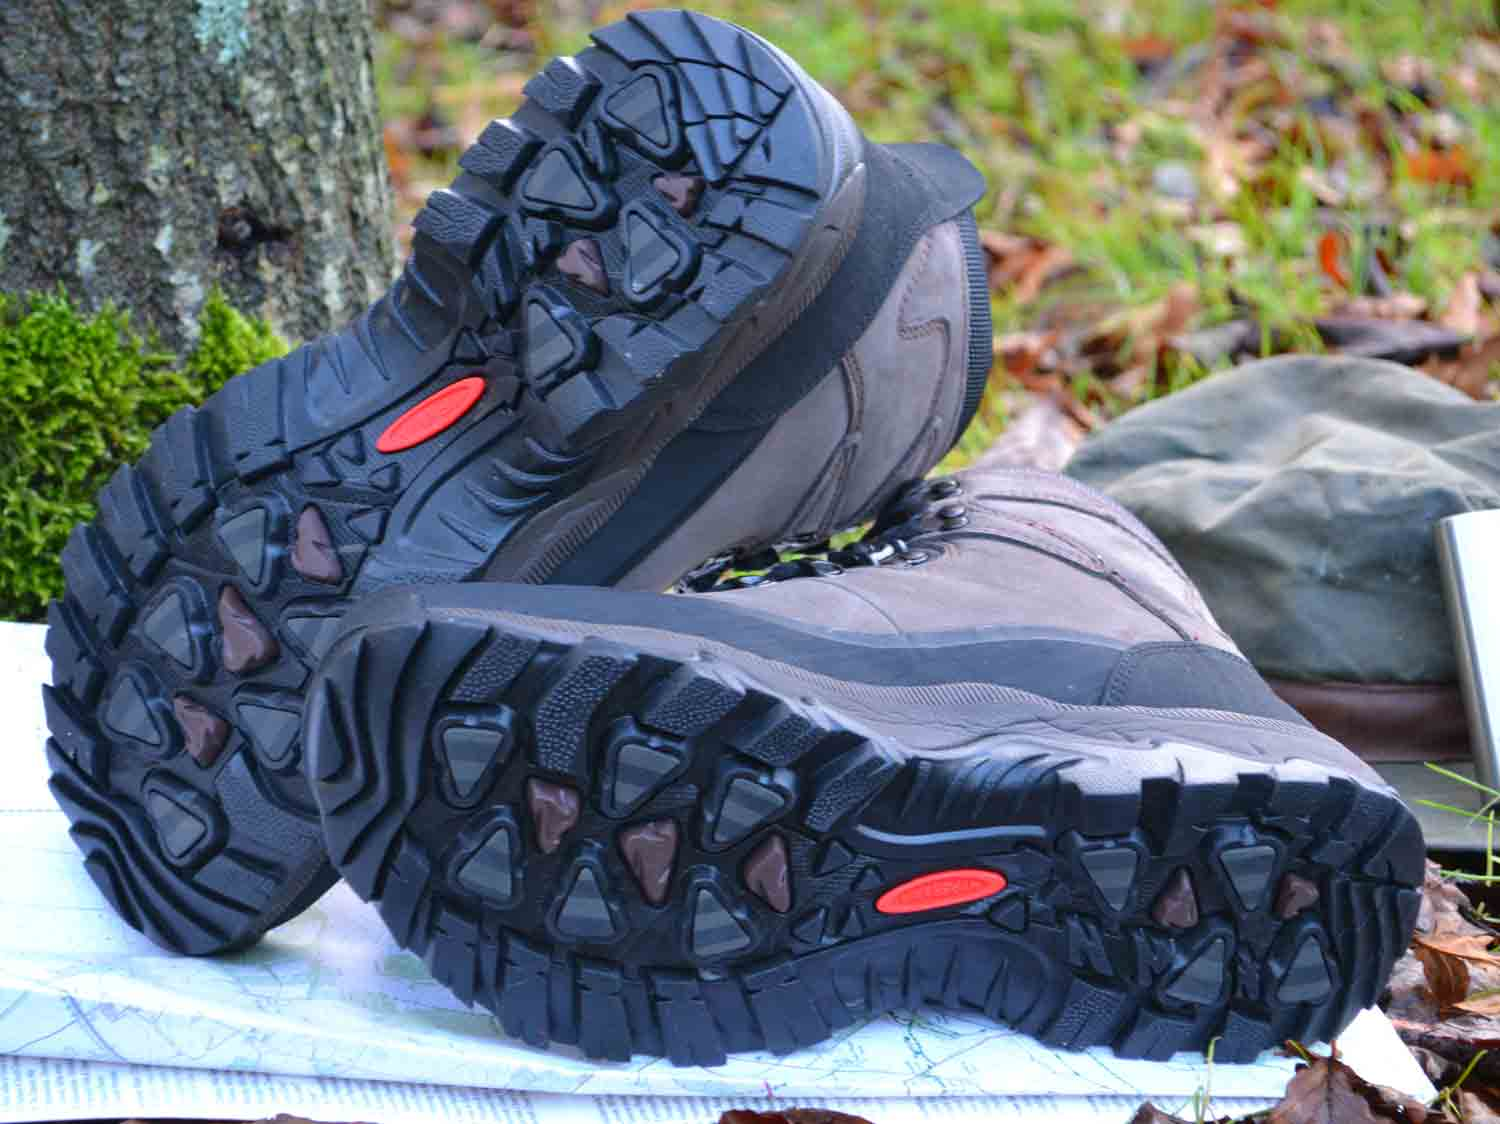 Hypergrip Soles with IceLock Technology for extra traction